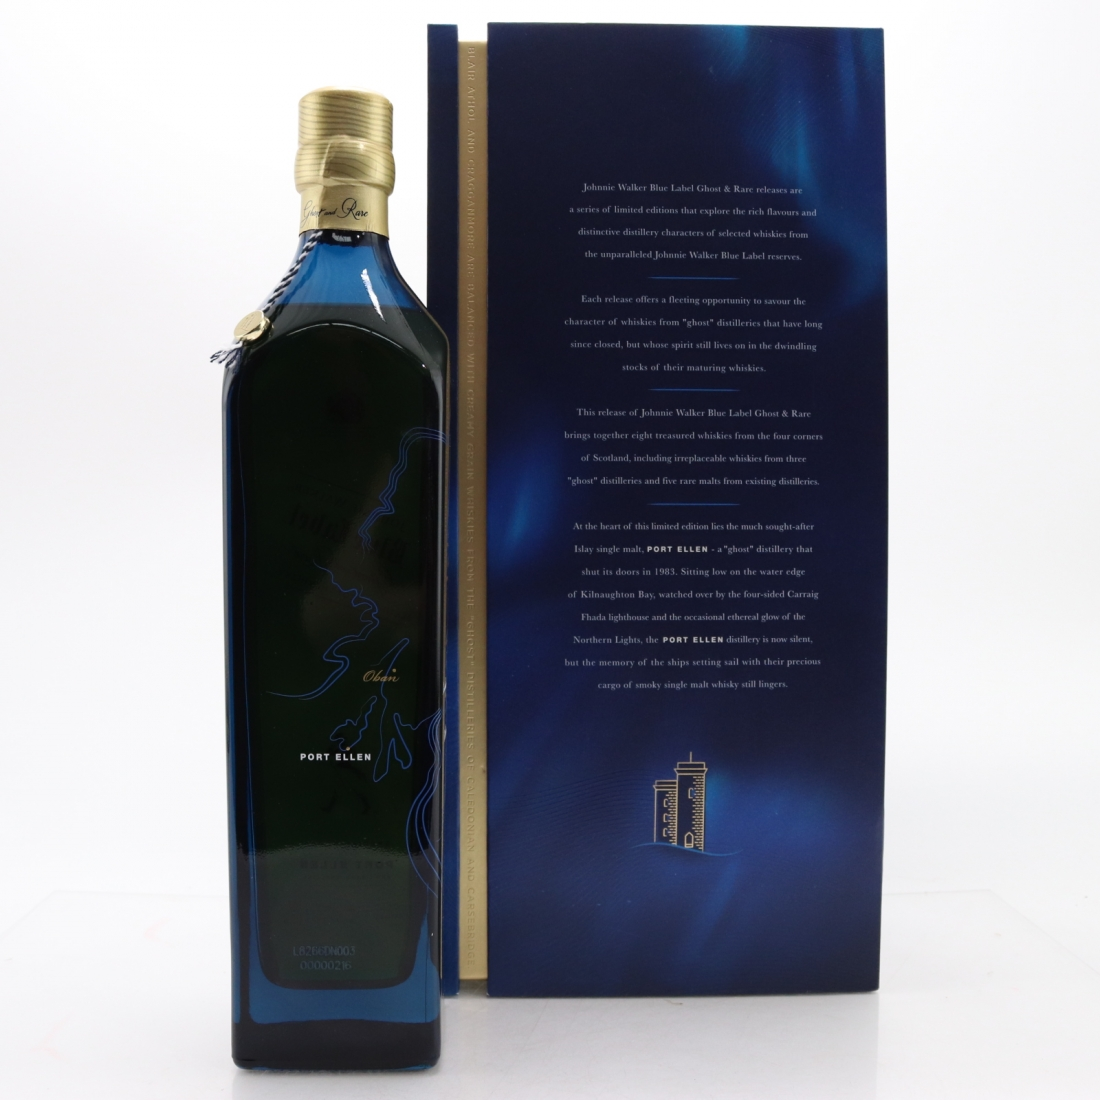 Johnnie Walker Blue Label Ghost and Rare 75cl 2nd Edition​ / Port Ellen